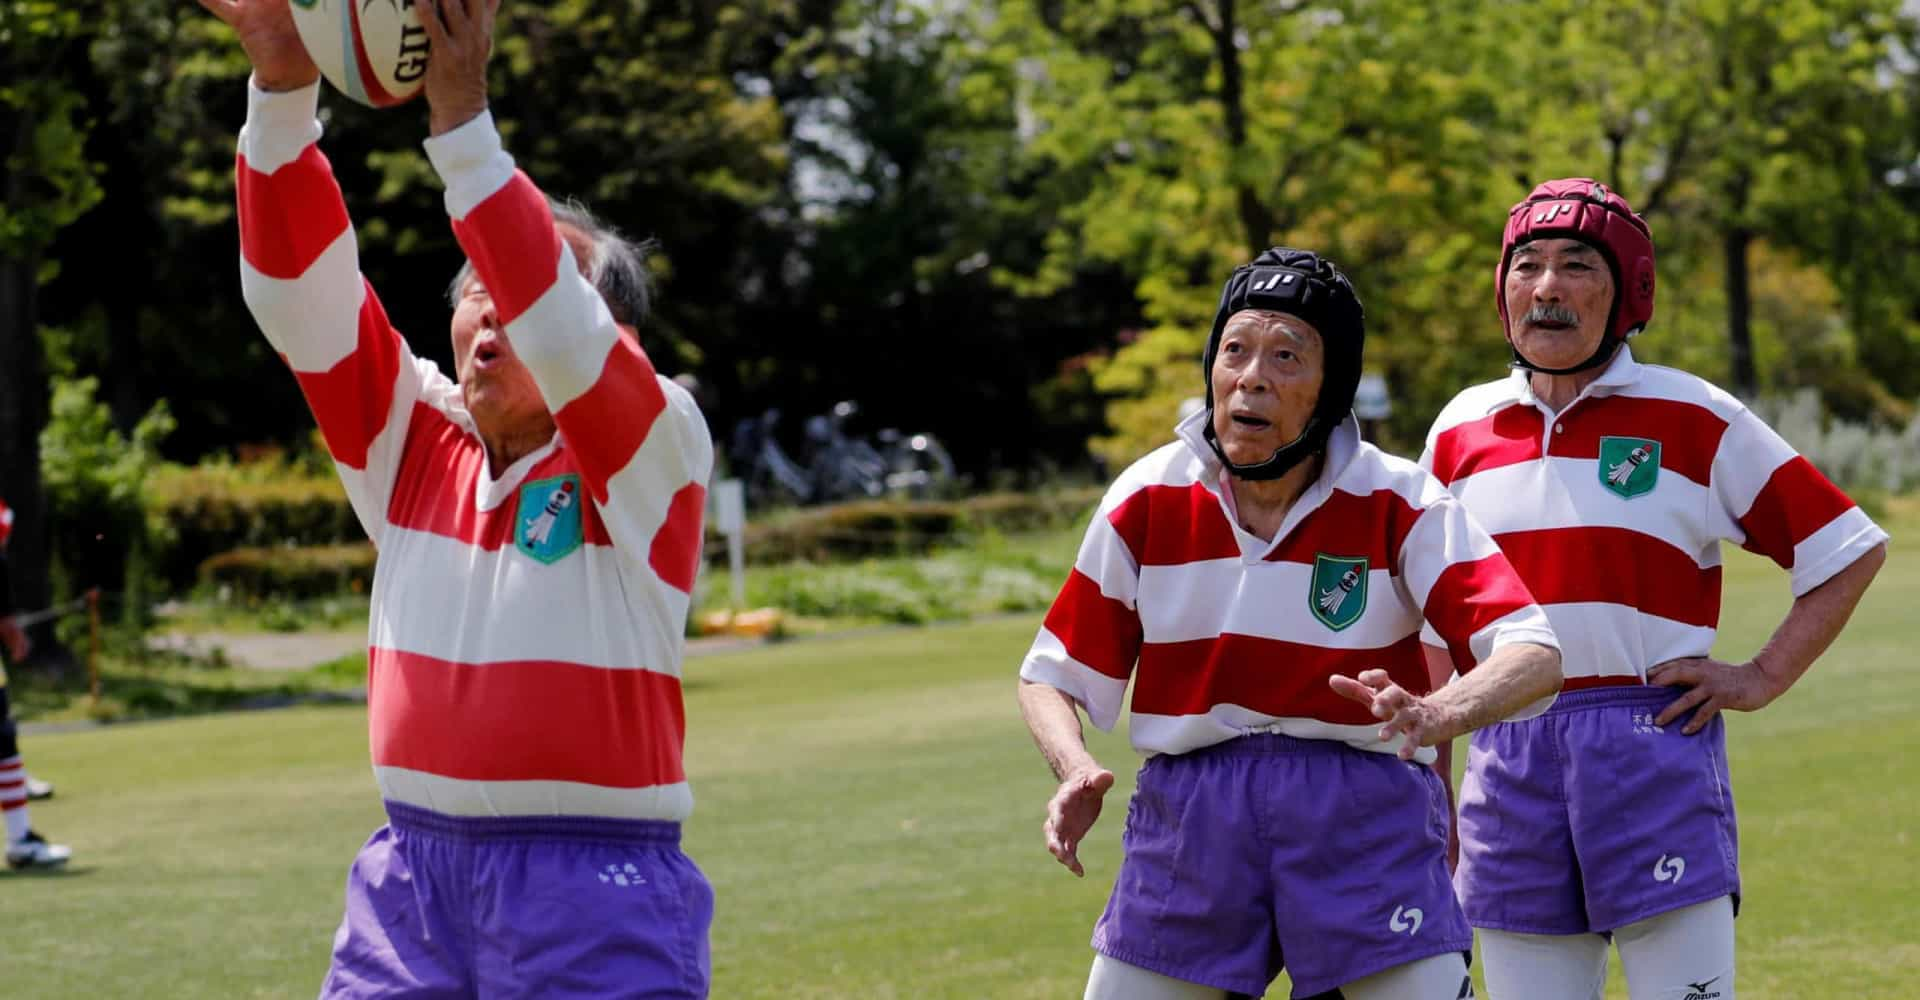 The Japanese seniors choosing rugby over retirement